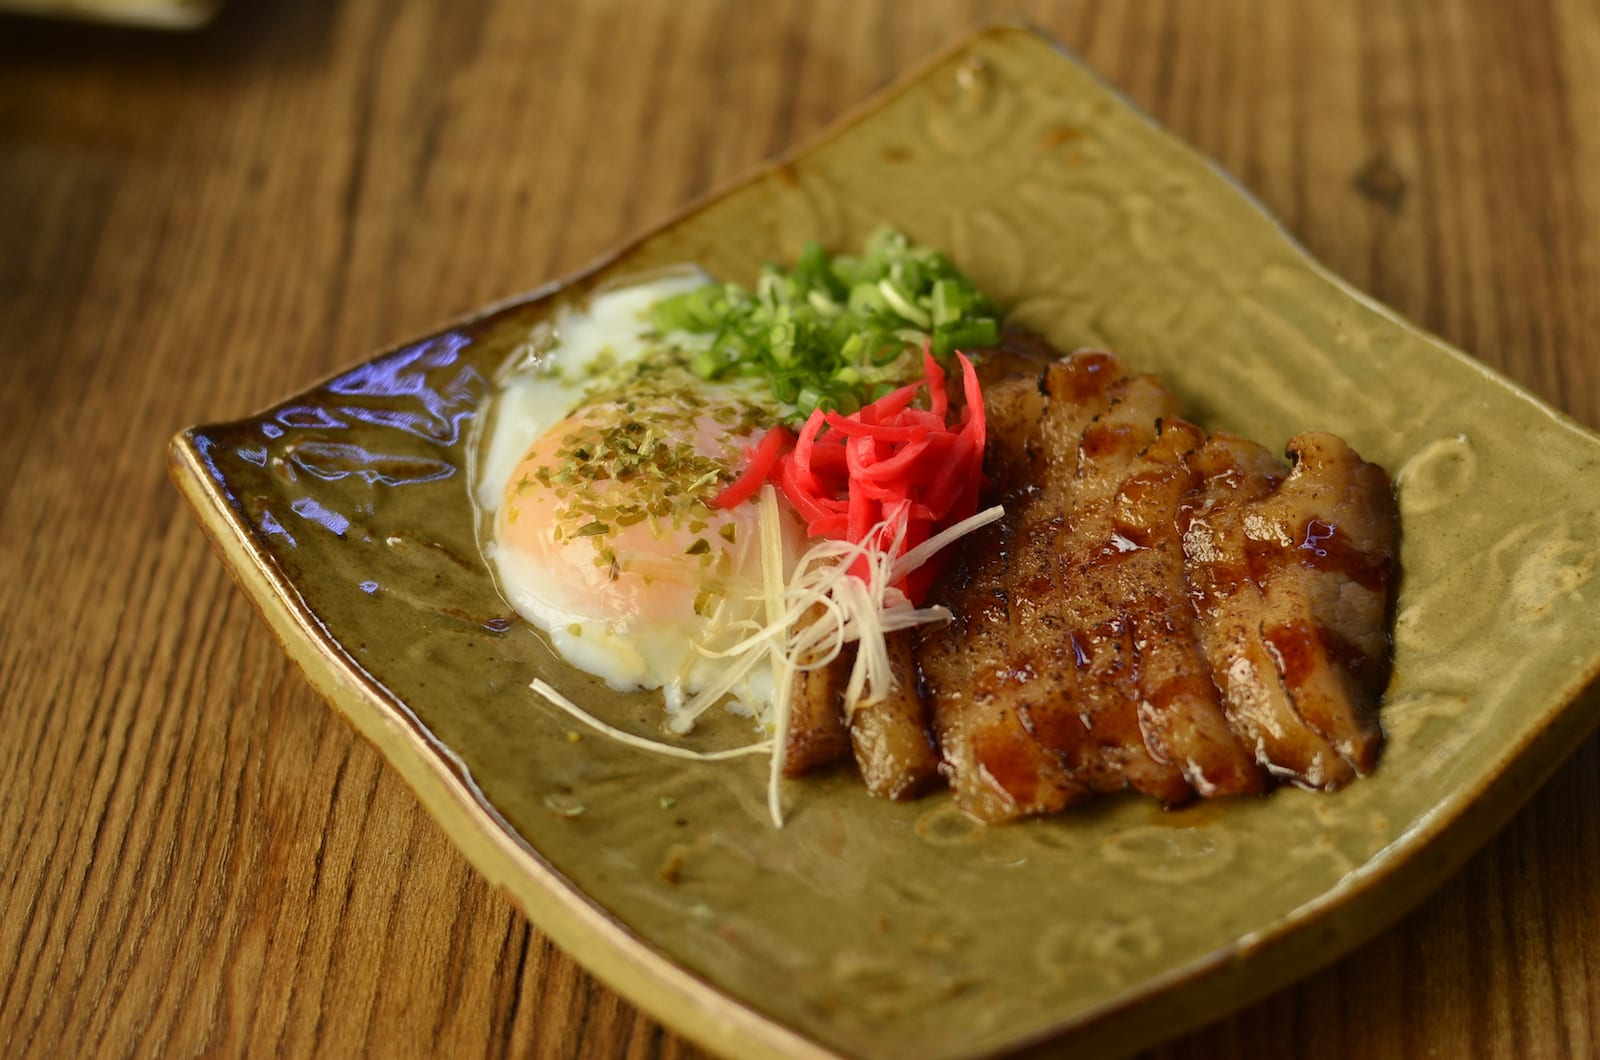 grilled pork jowl with egg and garnish